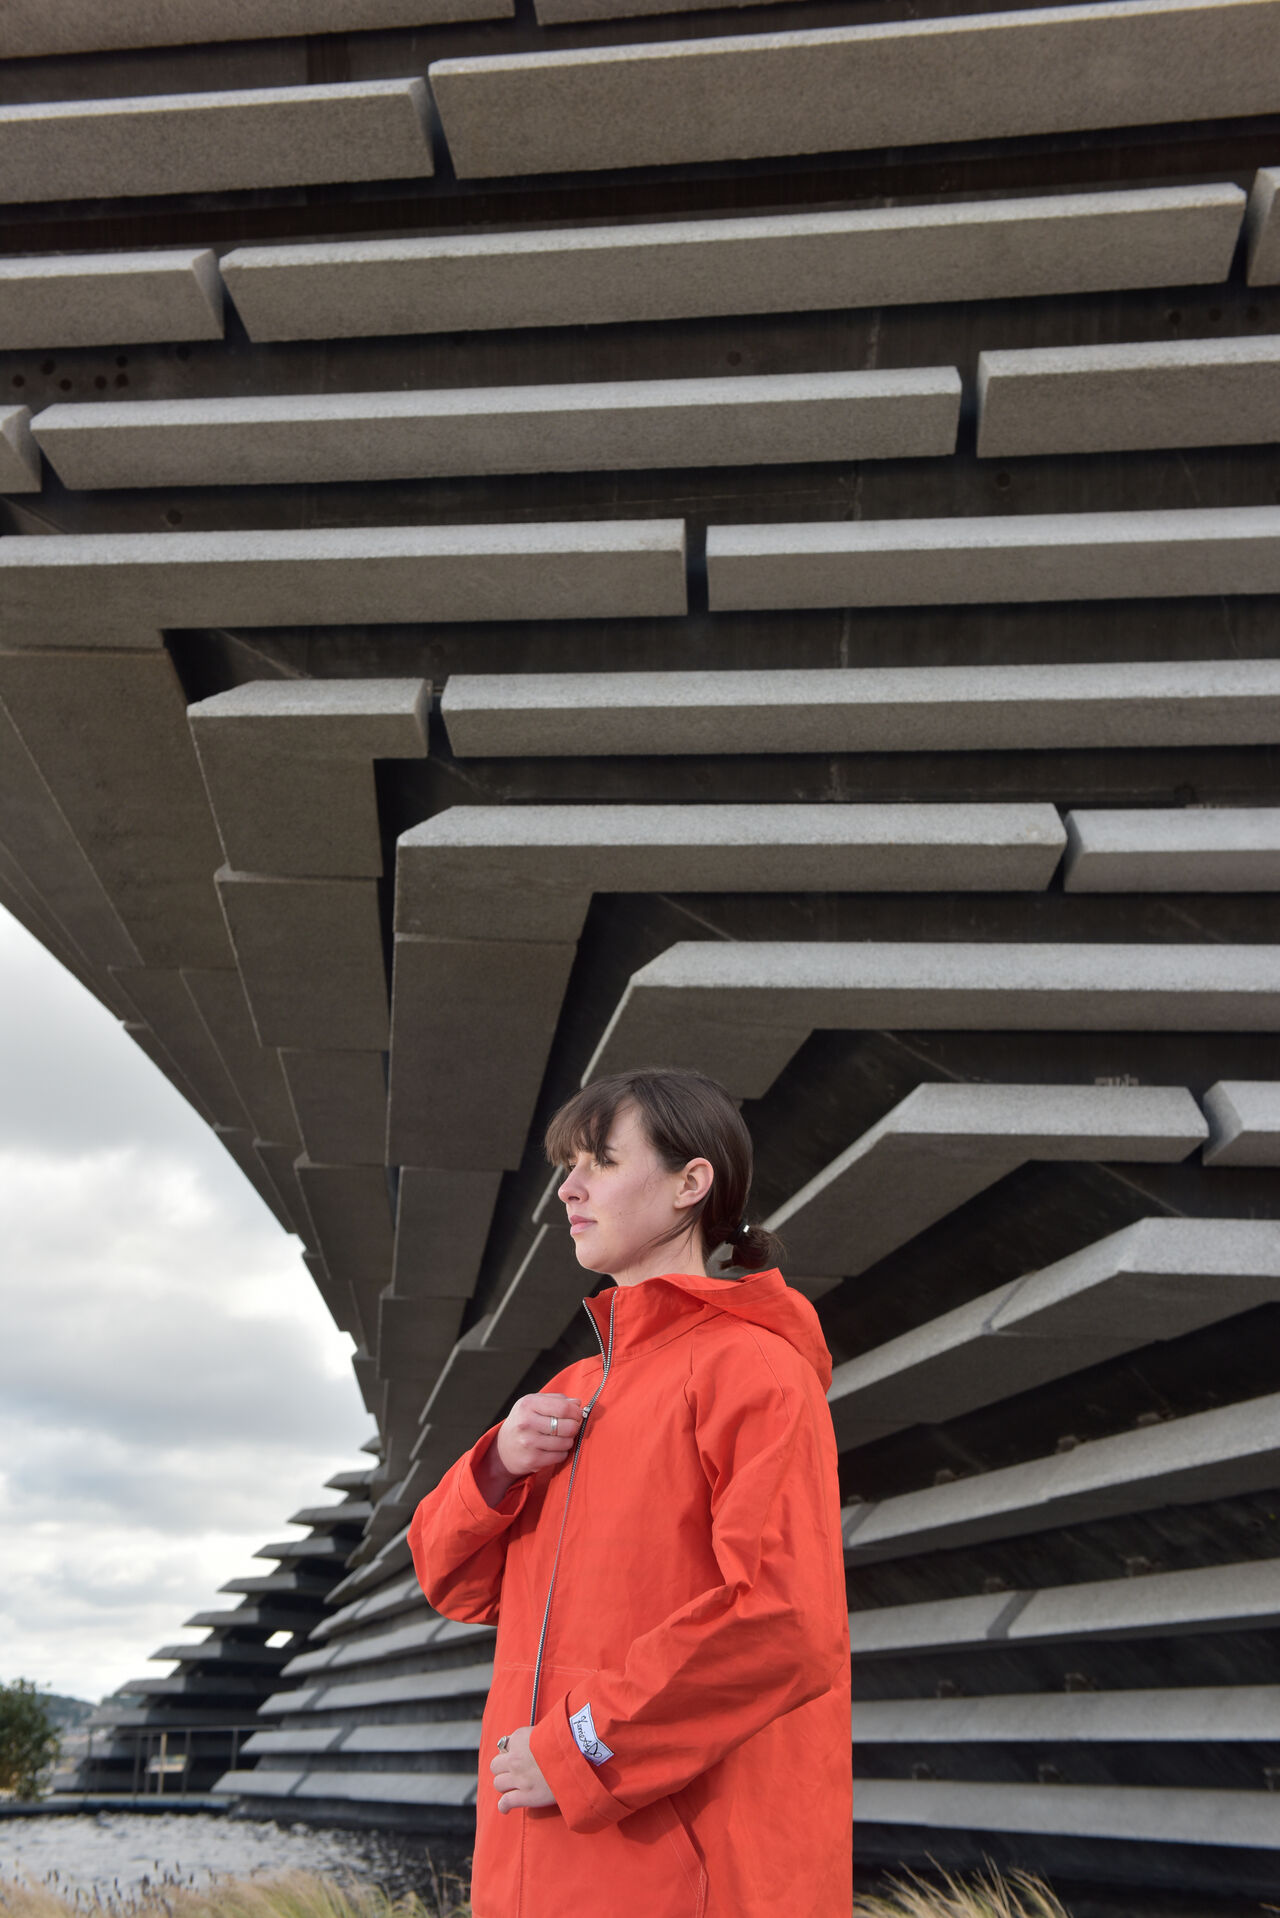 Someone posing outside V&A Dundee wearing an orange raincoat.